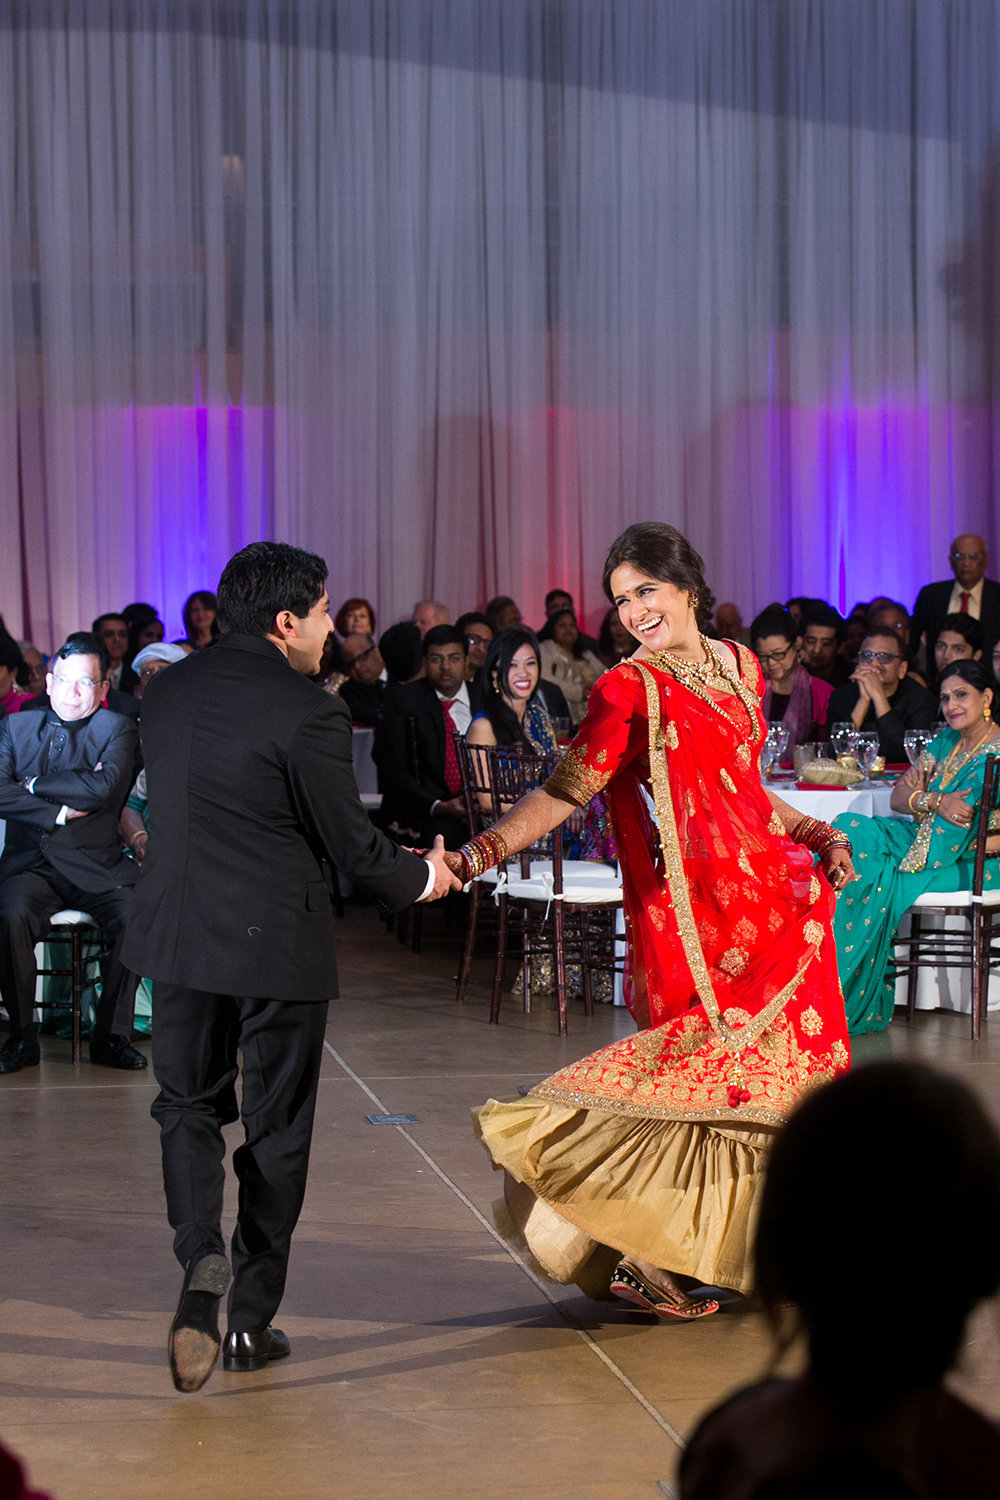 The first dance for a newlywed Indian couple